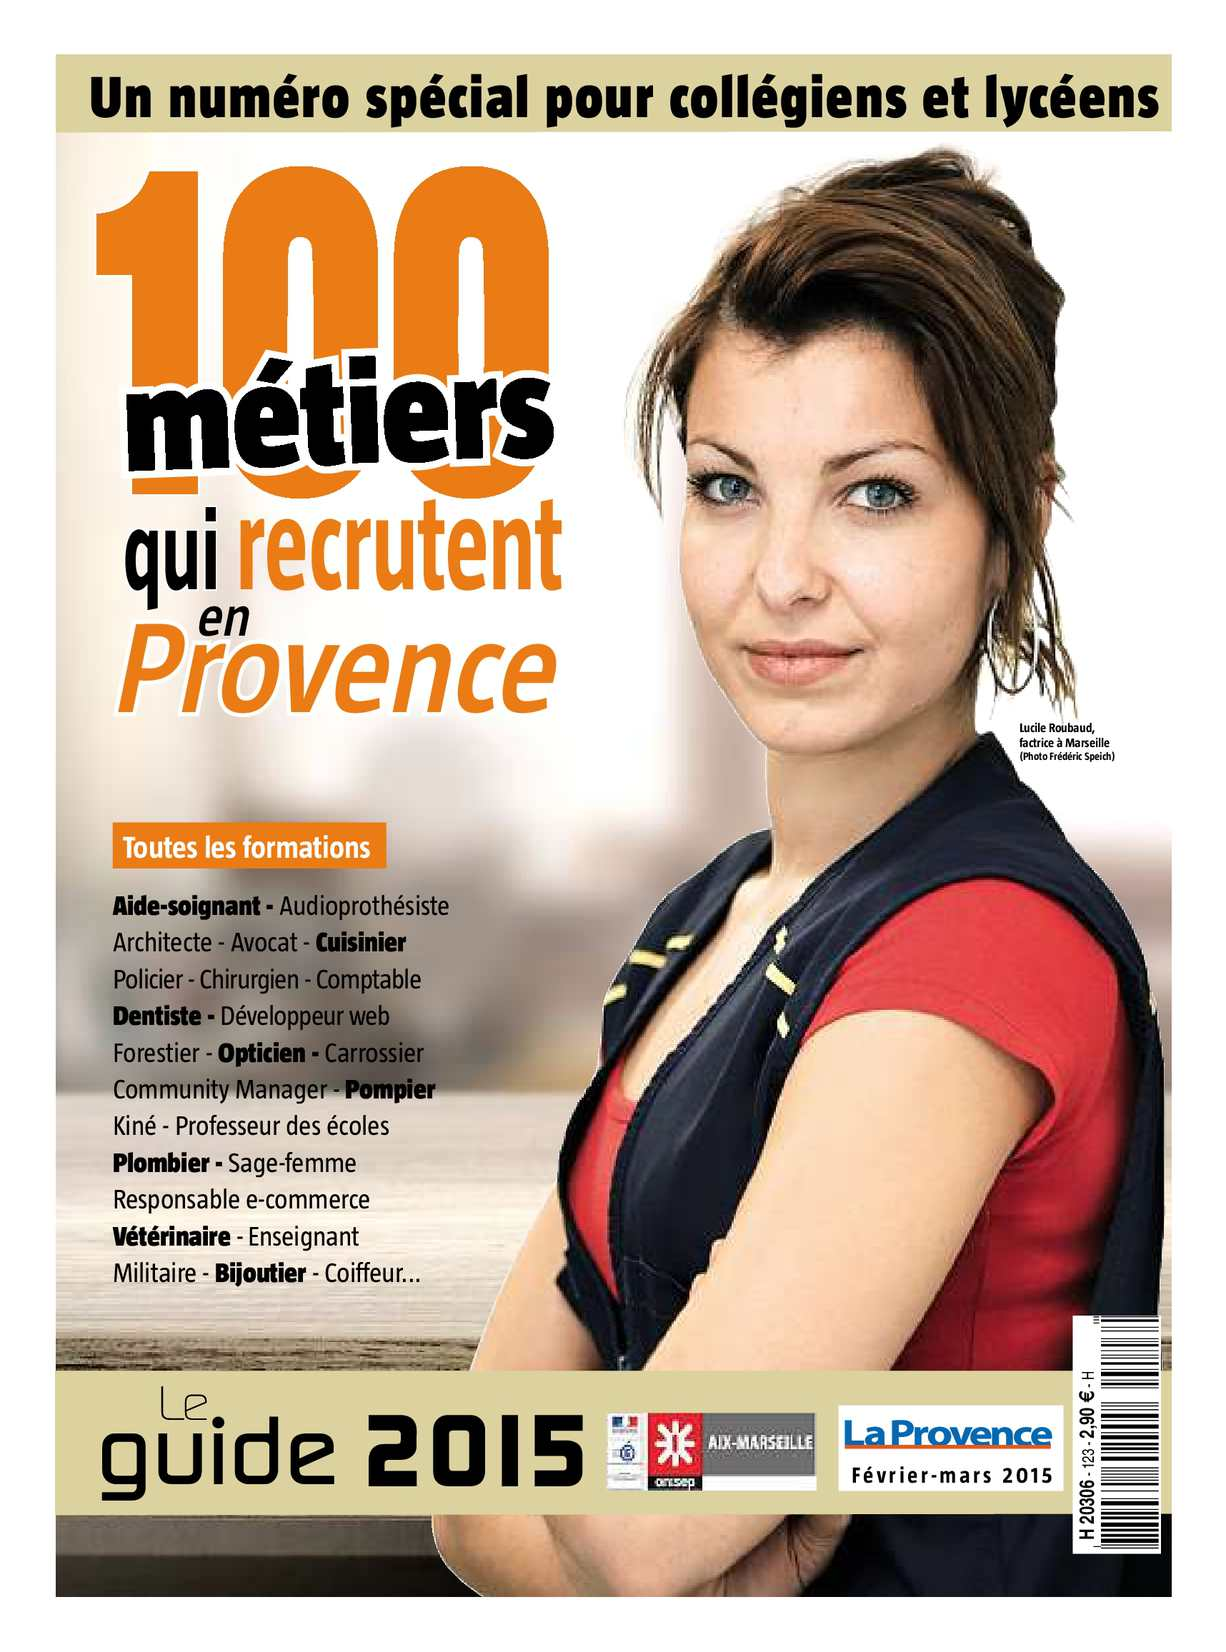 Calam o 100 m tiers qui recrutent en provence onisep for Cuisinier onisep